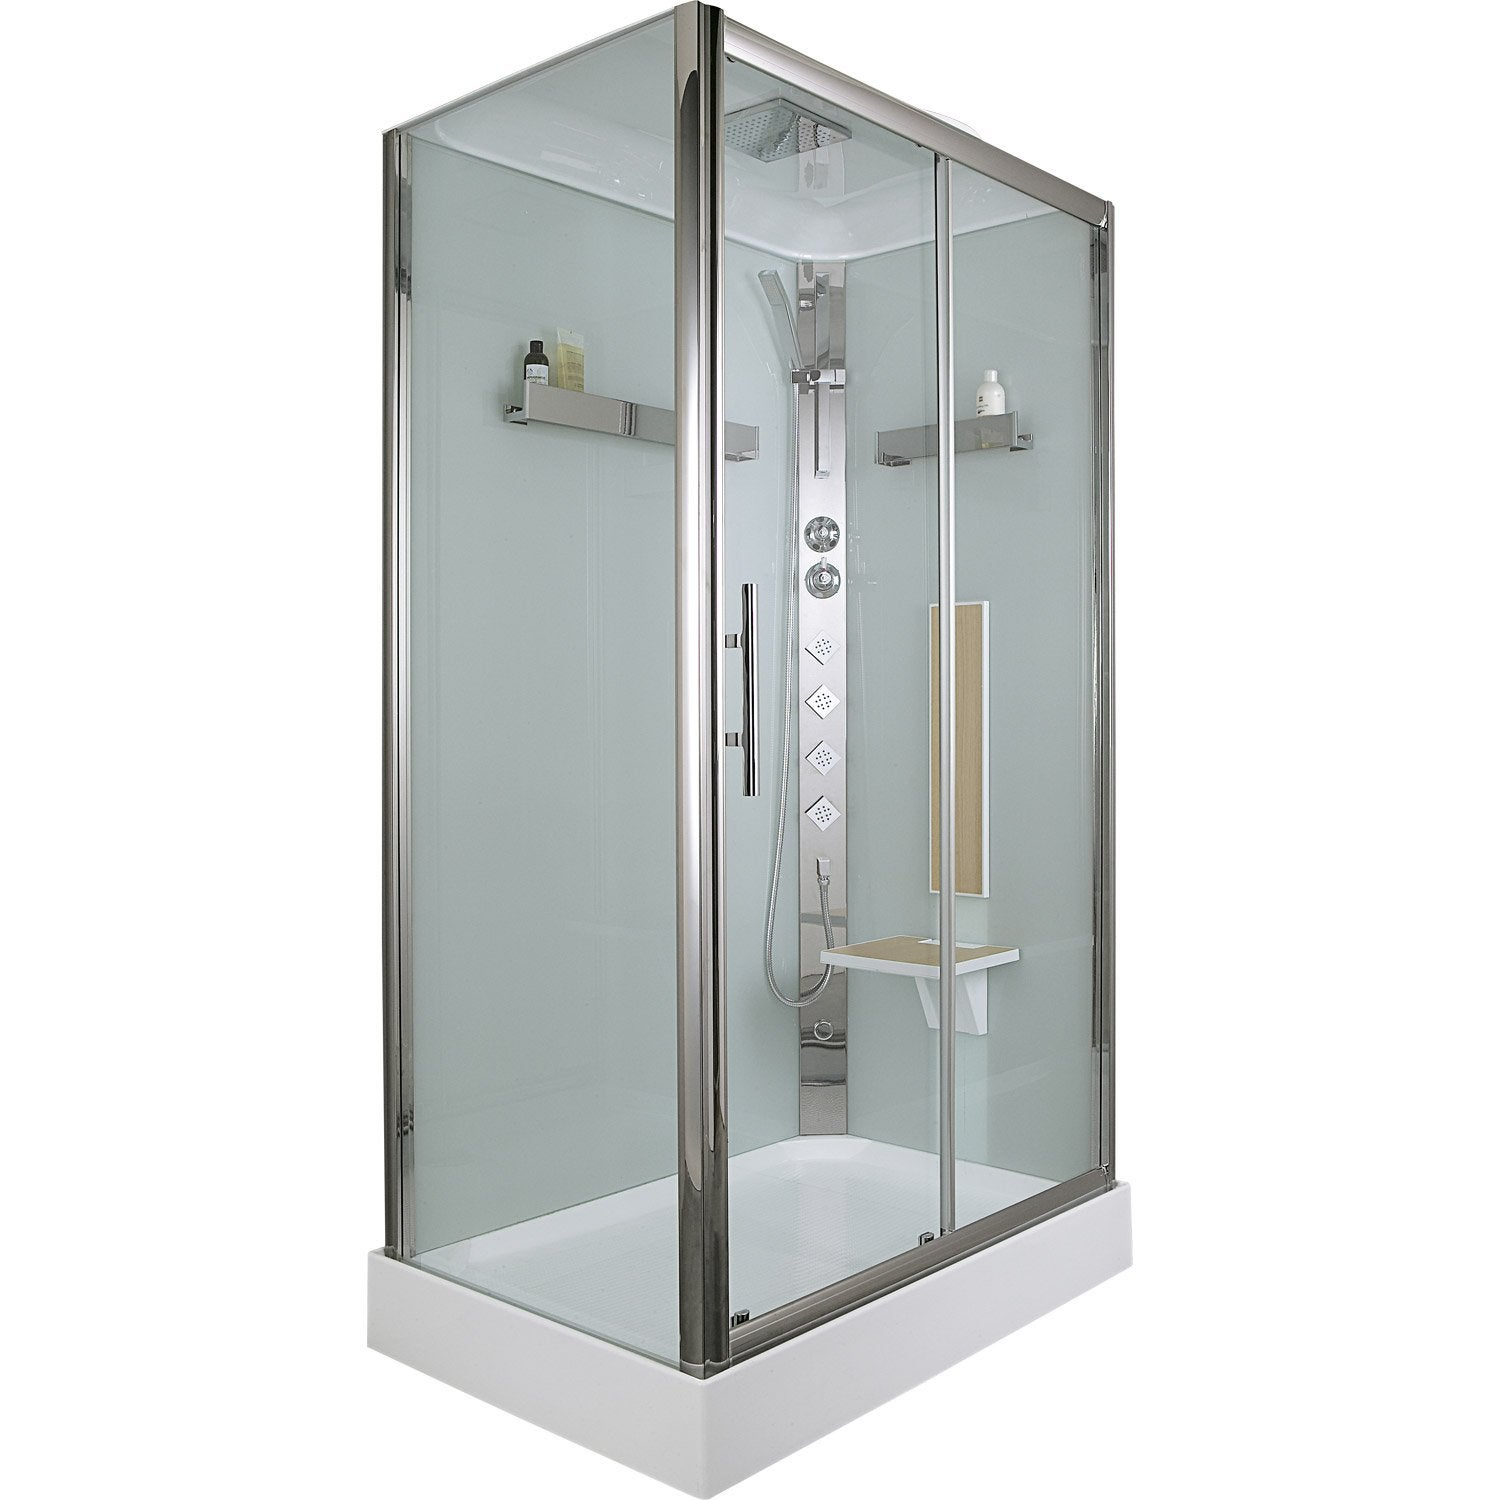 cabine de douche rectangulaire 120x80 cm ilia ch ne droite leroy merlin. Black Bedroom Furniture Sets. Home Design Ideas